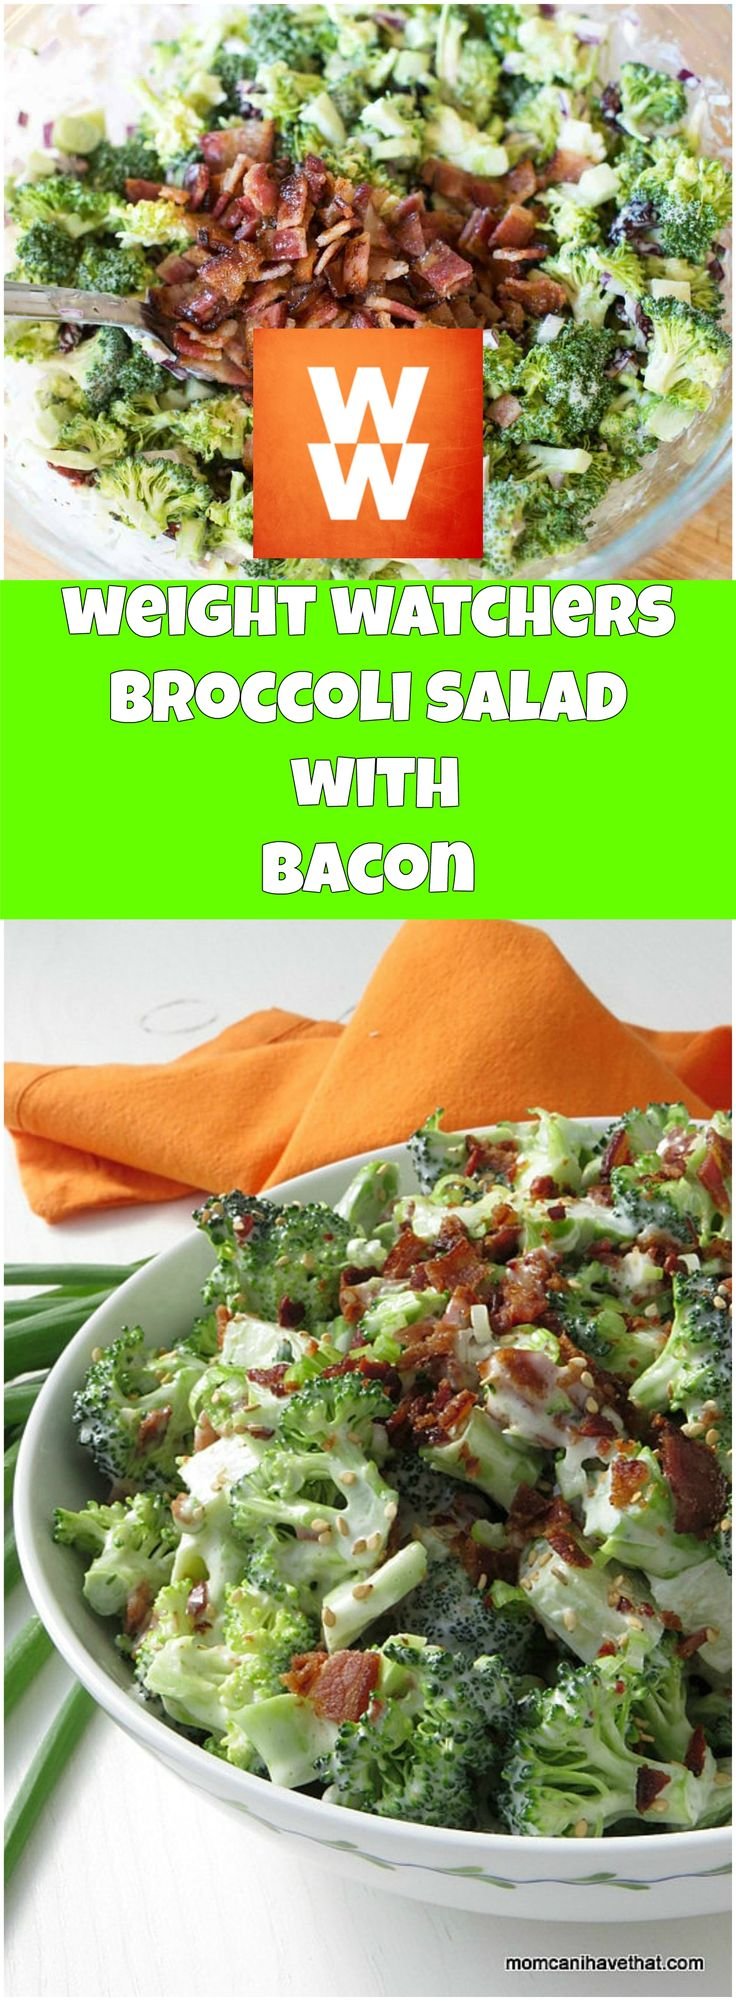 weight watchers broccoli salad with bacon   weight watchers recipes